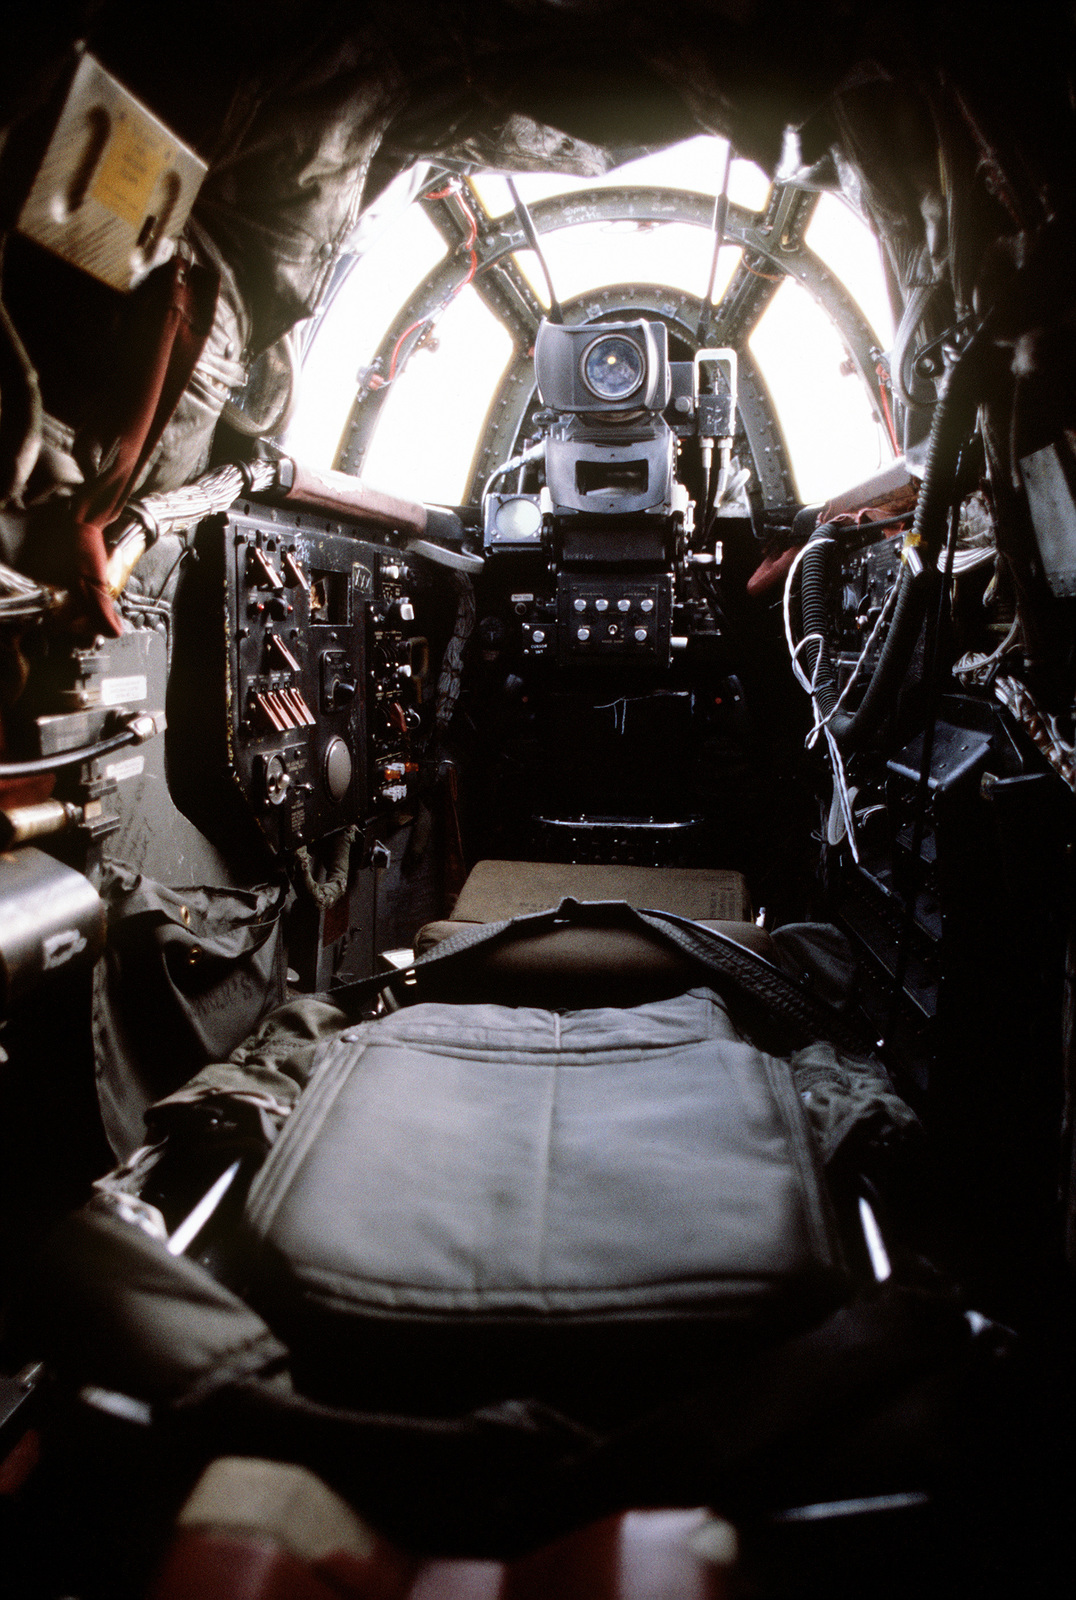 A view of the reclined seat that enables the crewman to